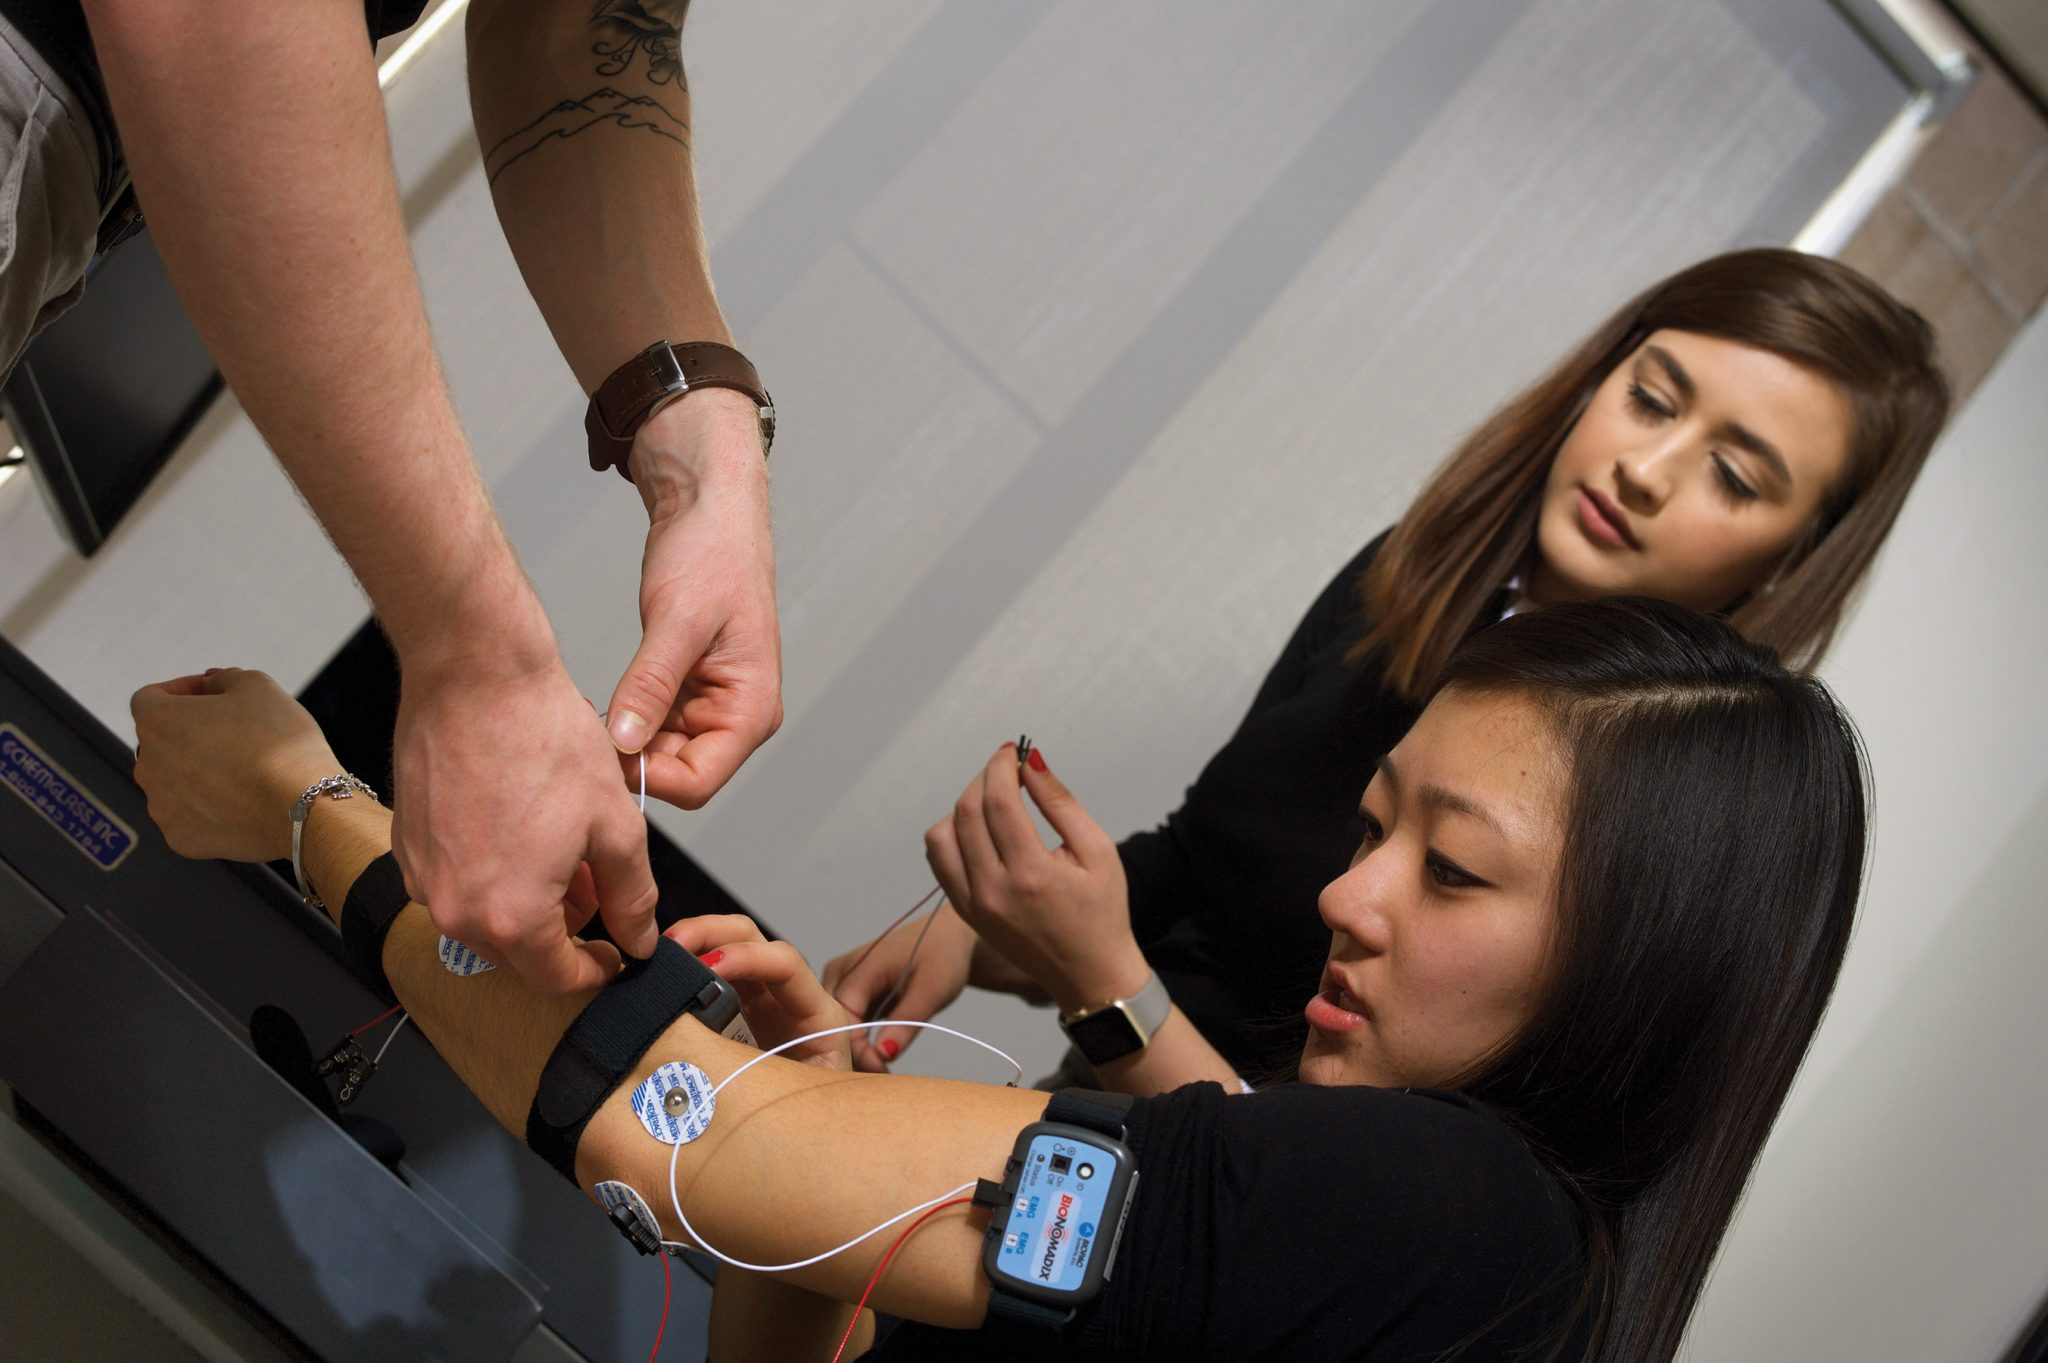 Student places EMG sensors on another student